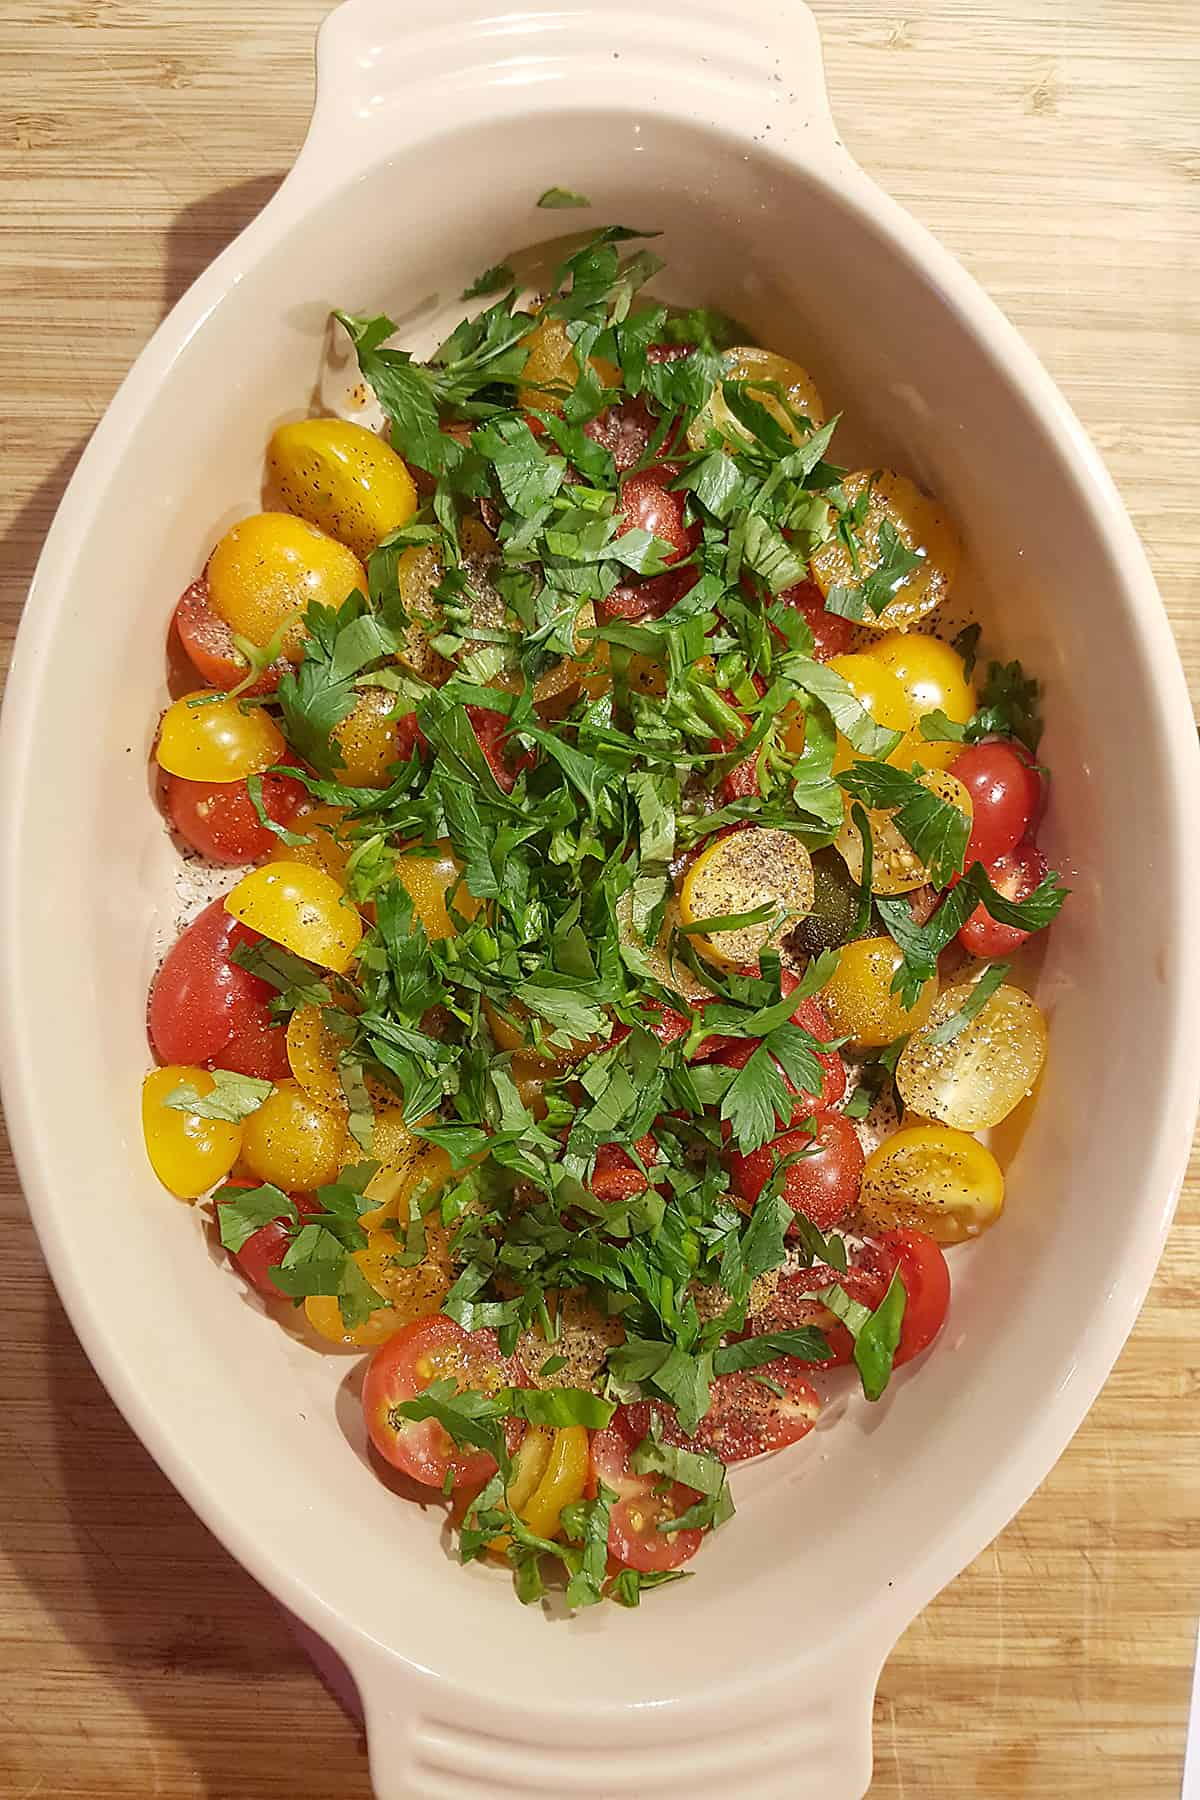 Ovenproof baking dish with halved cherry tomatoes and herbs